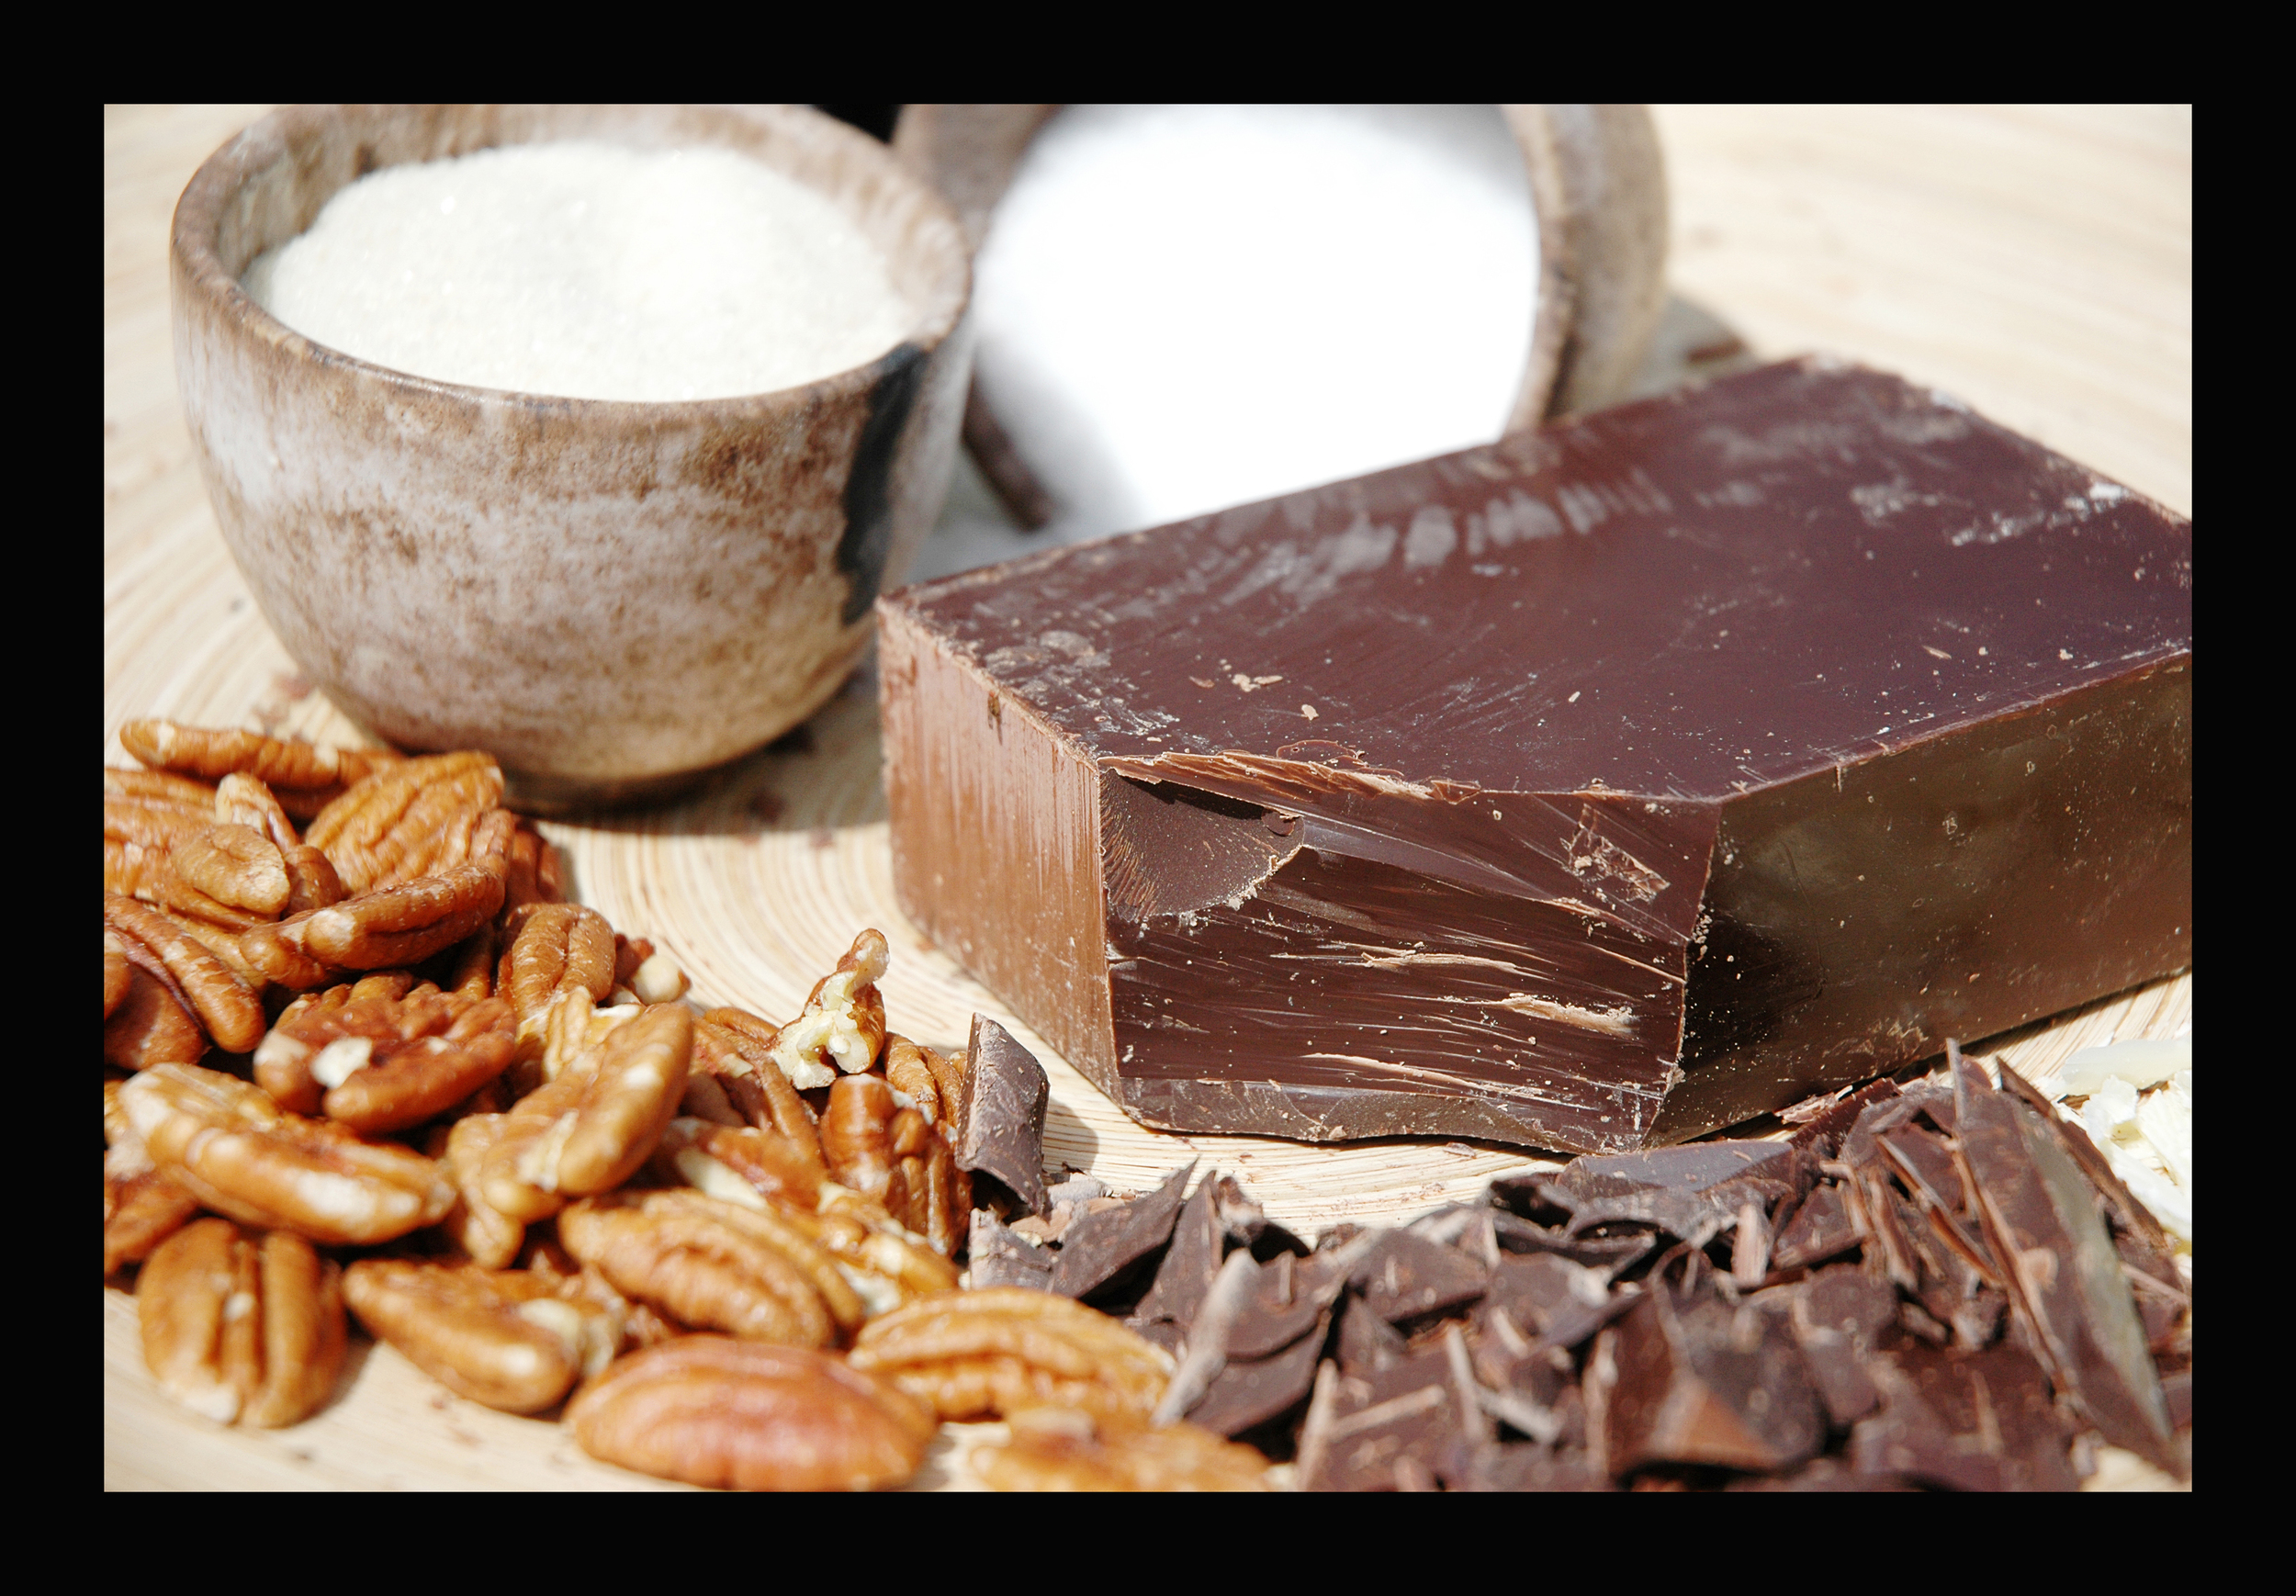 Chocolate Fudge All Natural Ingredients Organic Fairly Tradedjpg